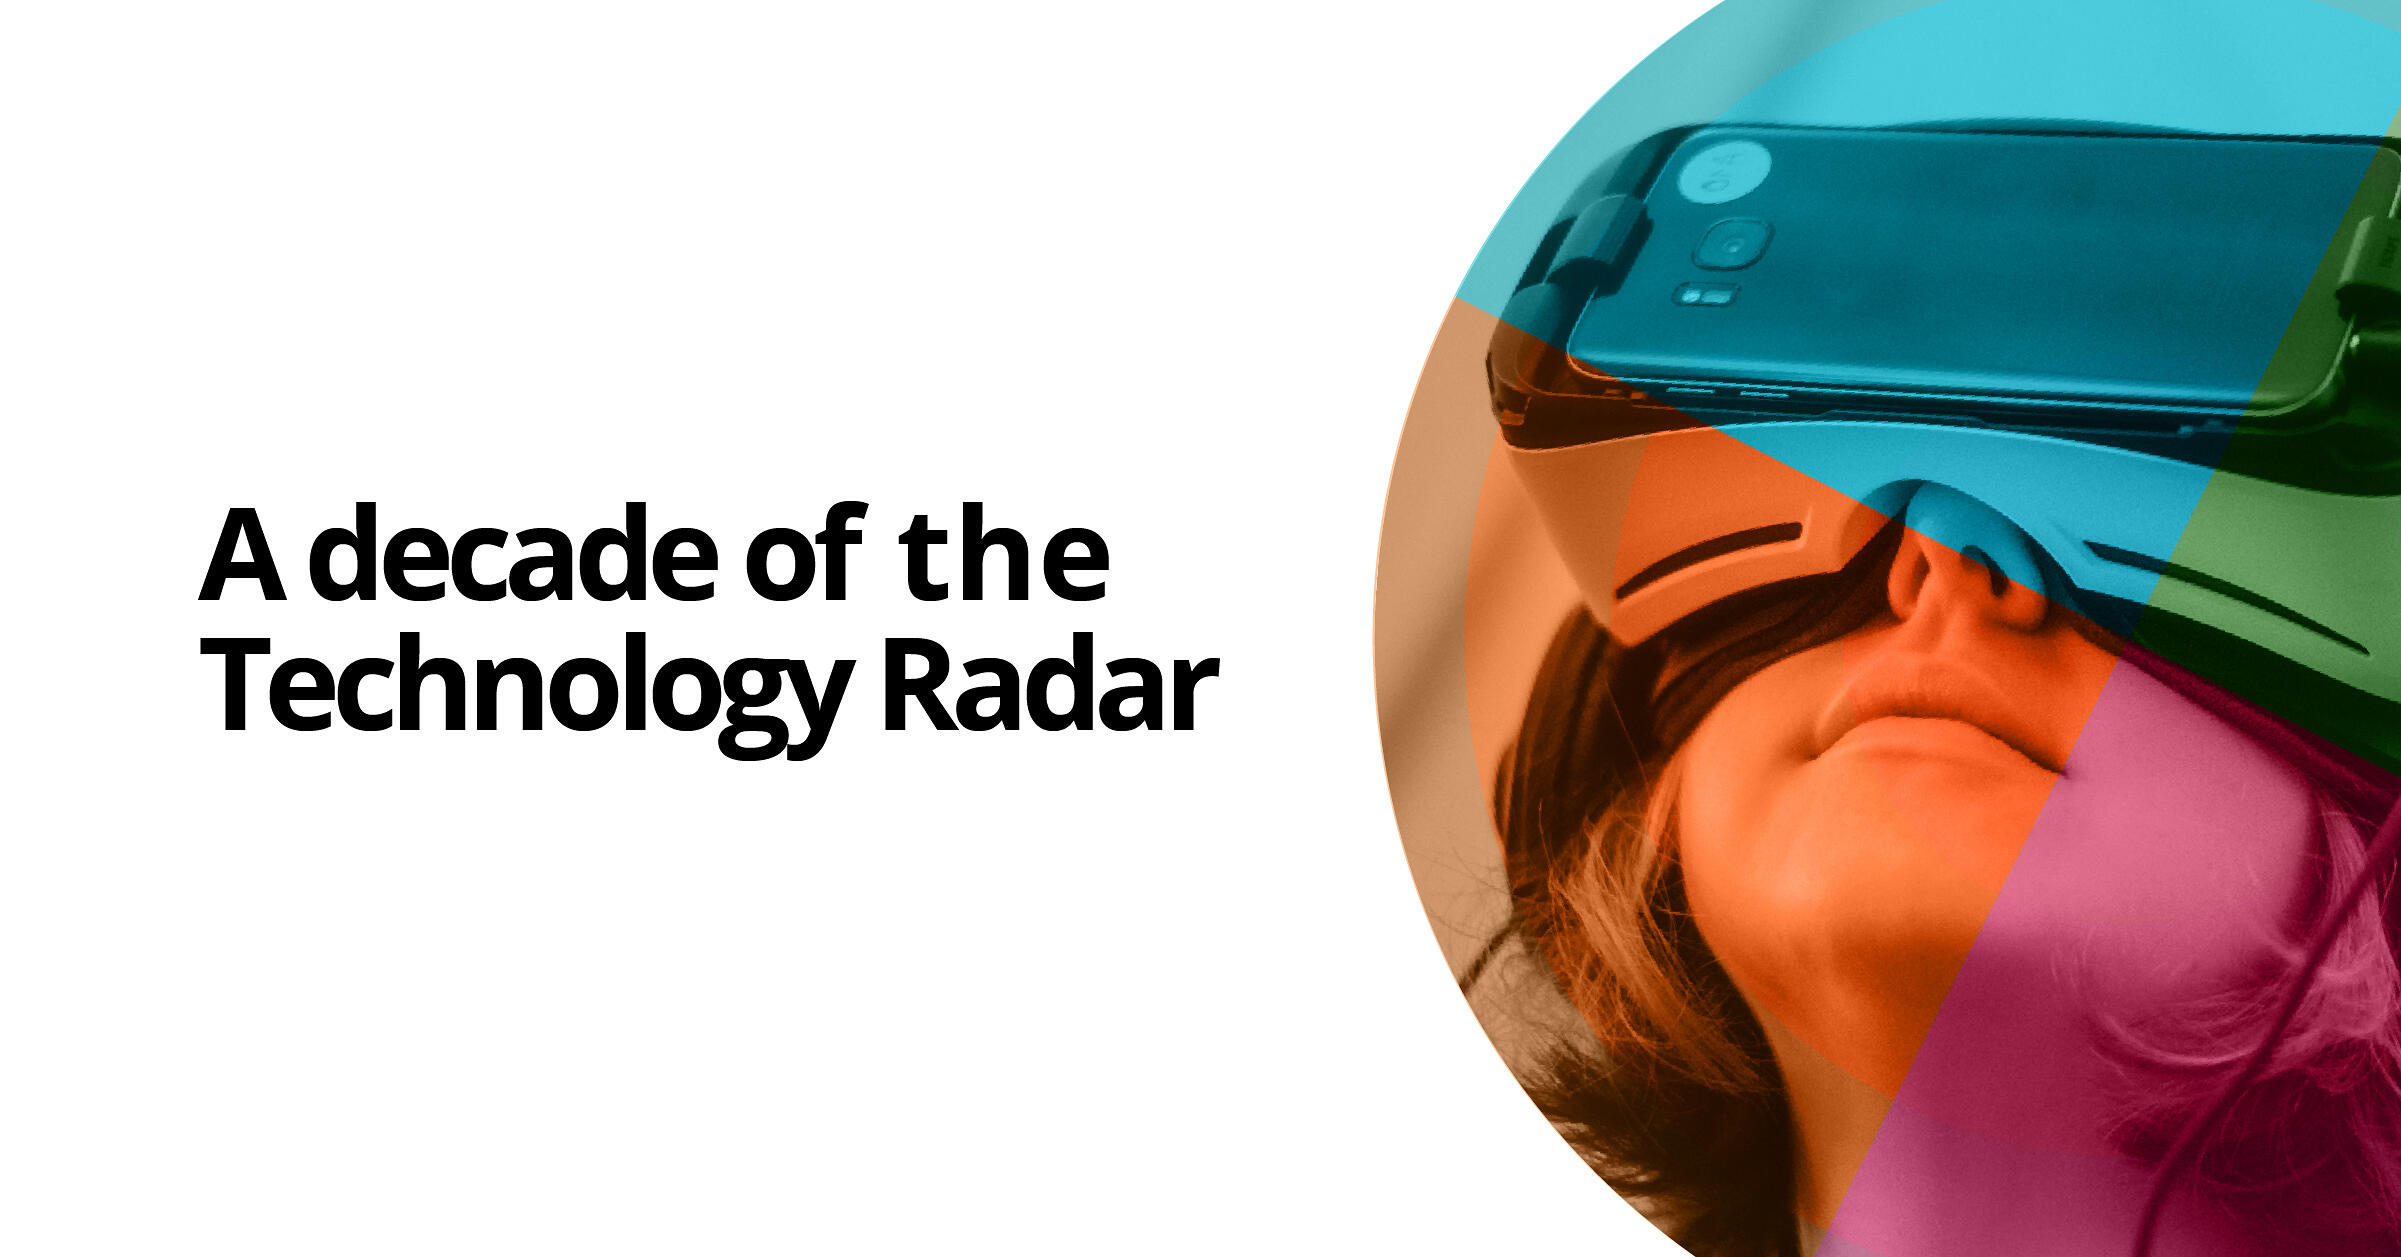 10 ปีของTechnology Radar